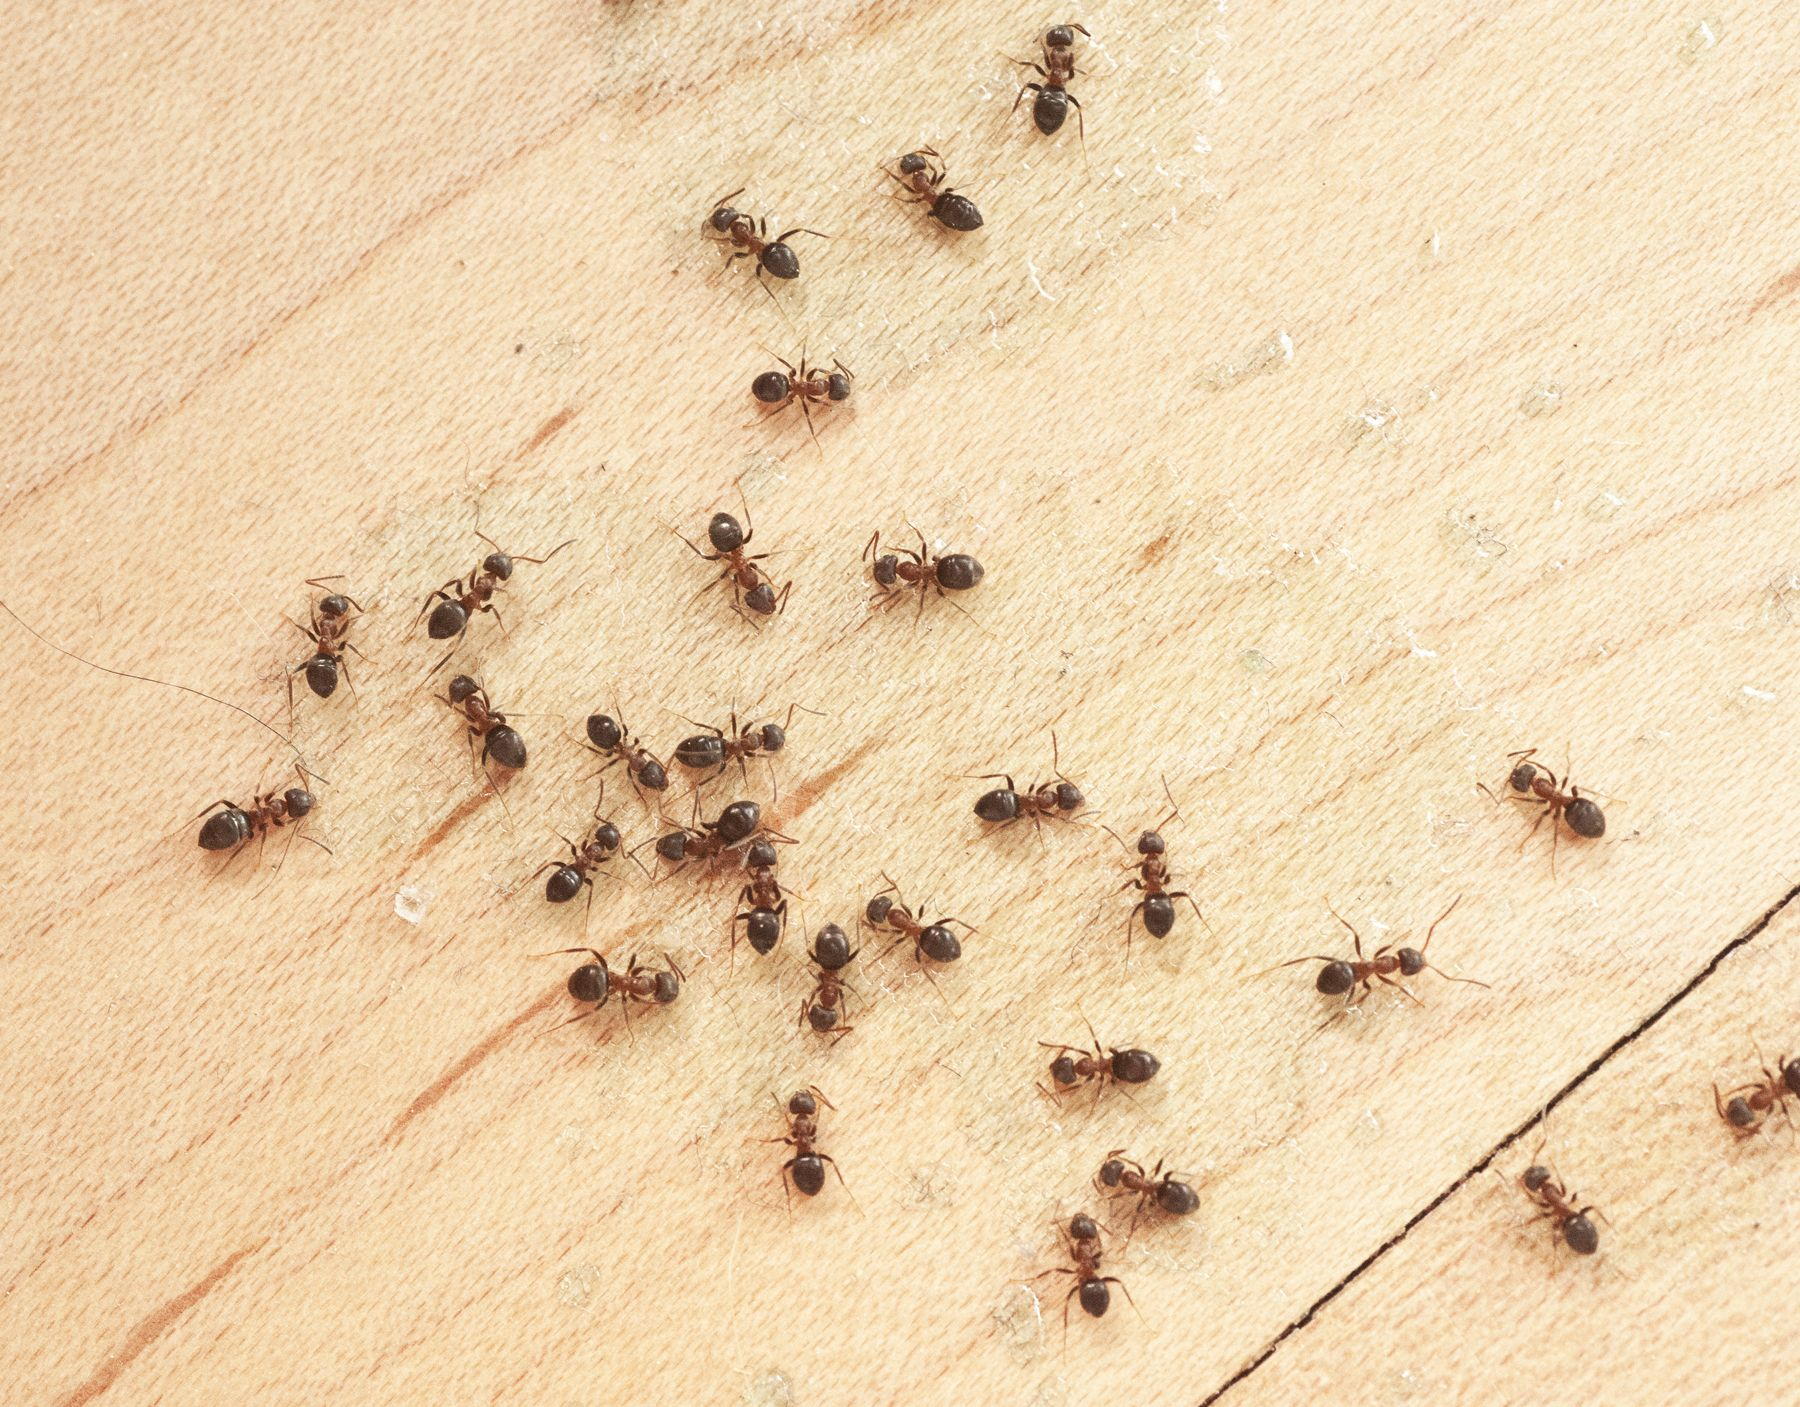 Get Rid of Ants With This Simple Home Solution